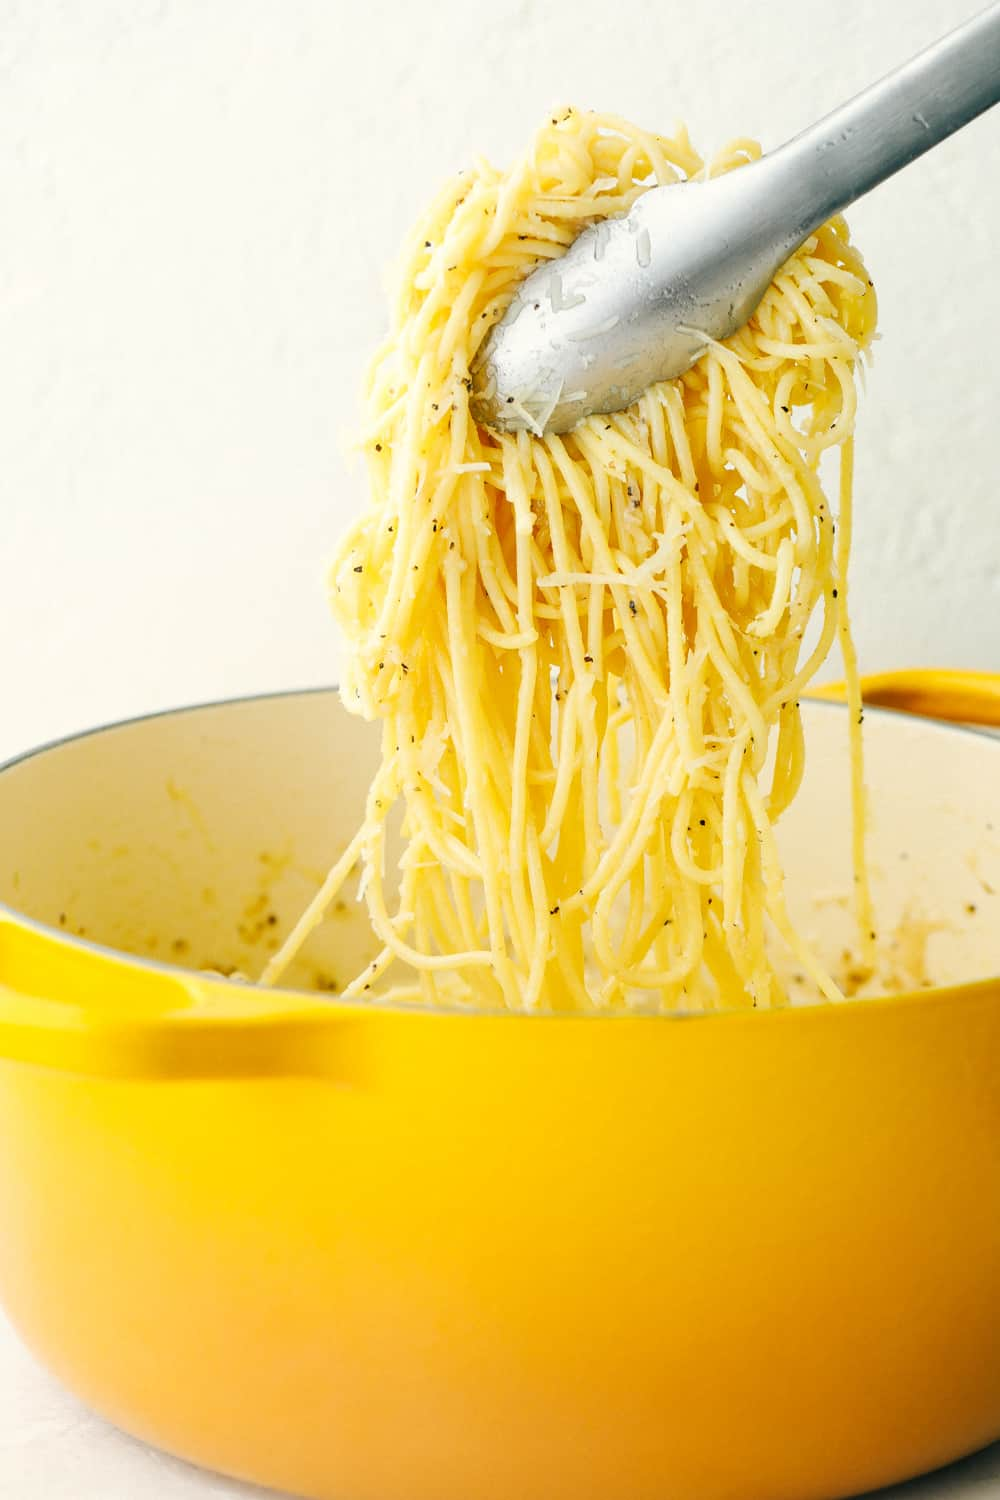 Hot noodles with Pecorino Romano Cheese and seasoning being lifted out of the pot with tongs.